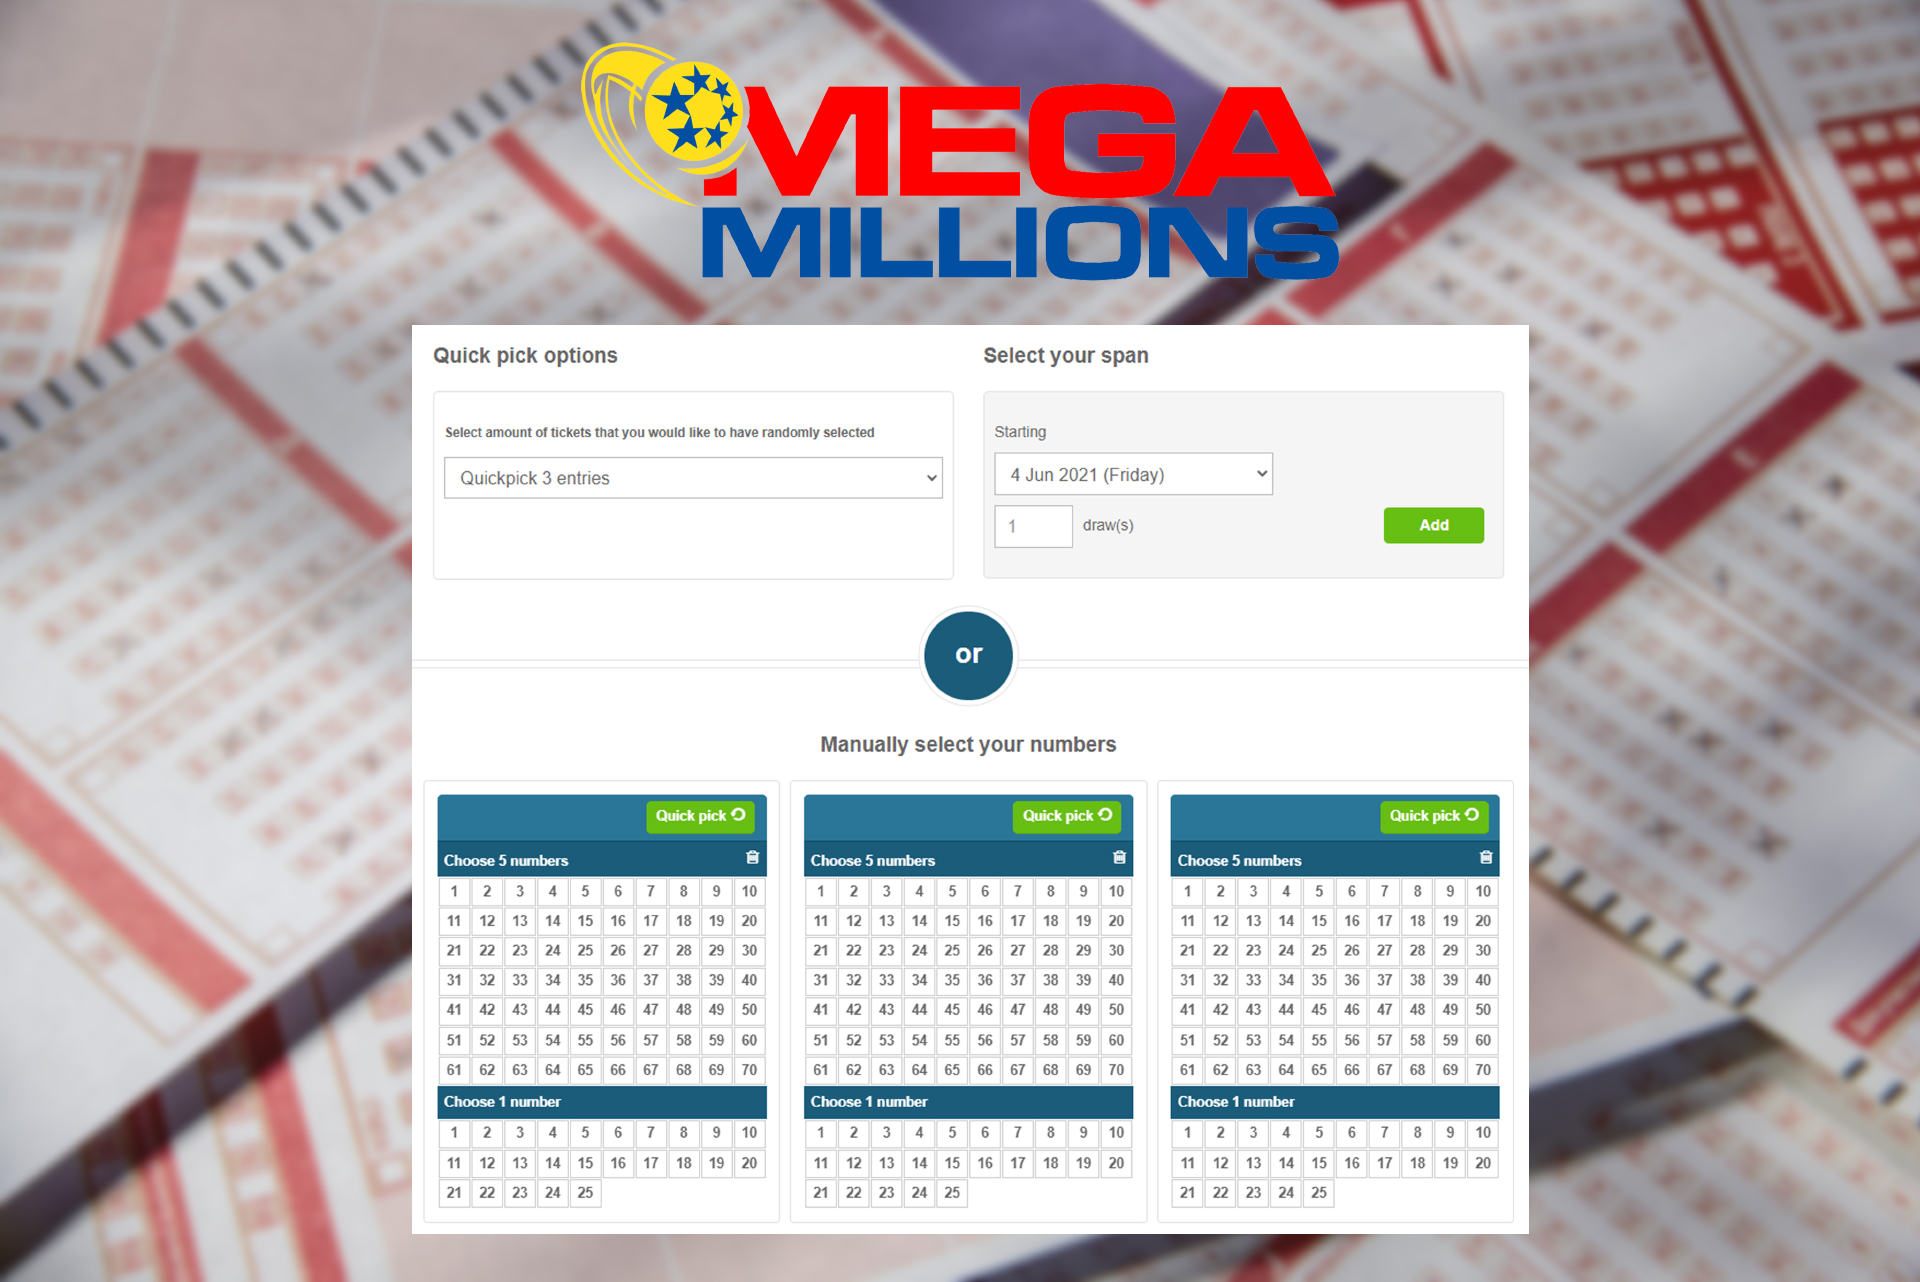 In the Mega Millions lottery, players have to choose 5 numbers.